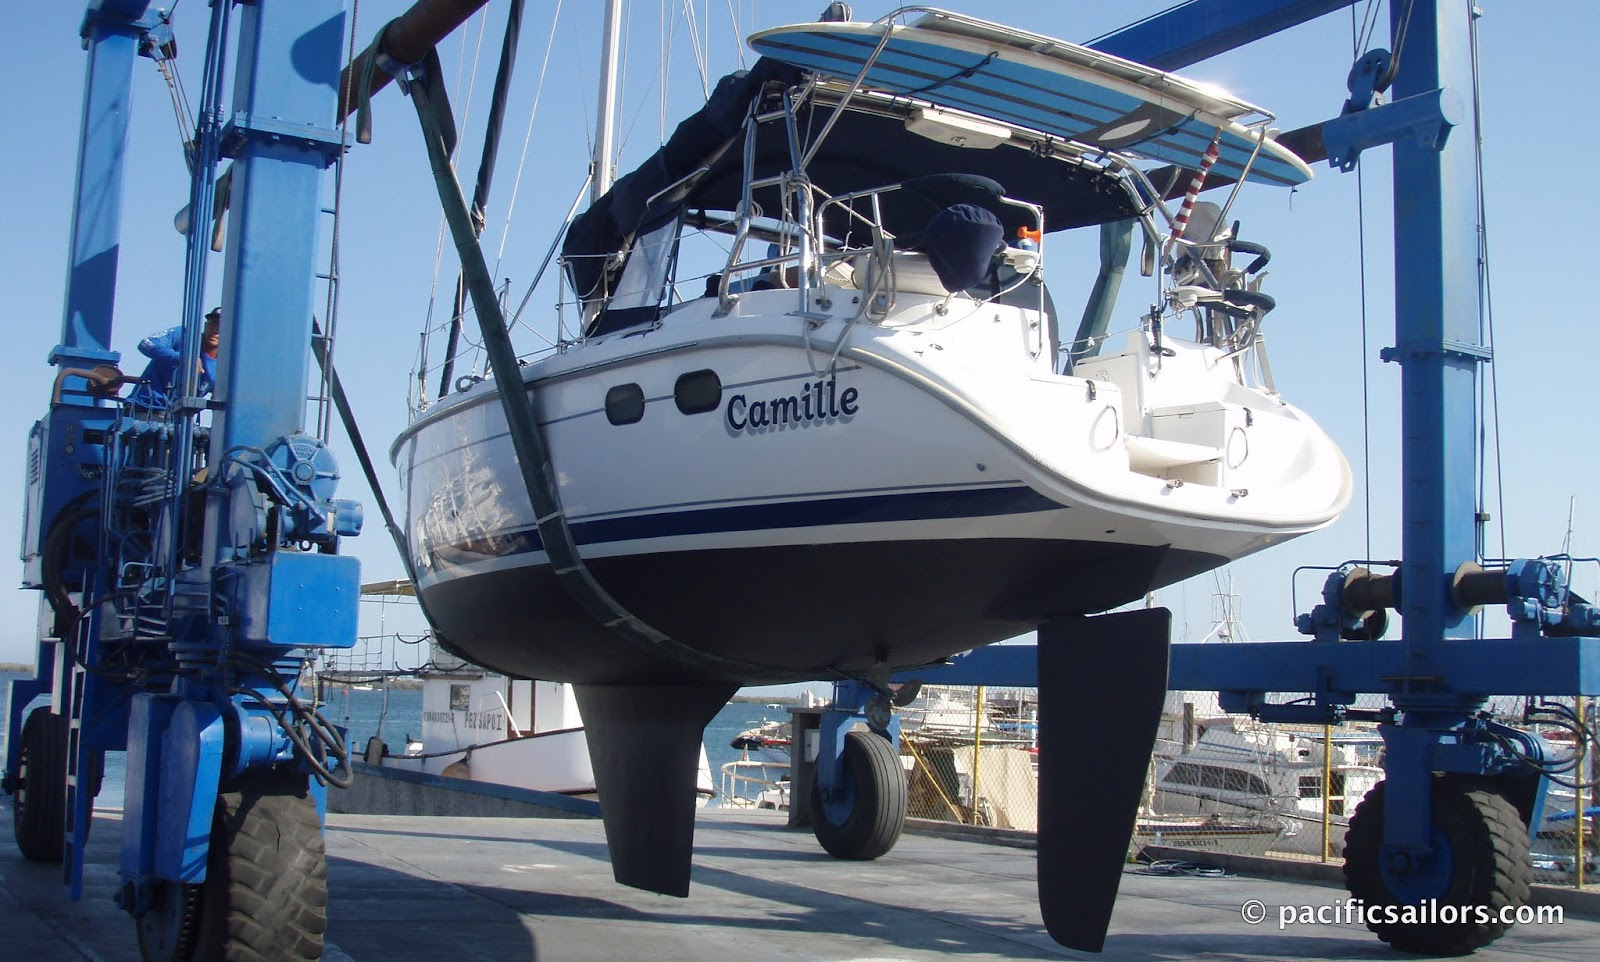 54a4731c69 We are back in the water after four days in the boatyard. It feels good to  be floating again. Every night when the Coromuels blew the boat would  shudder and ...